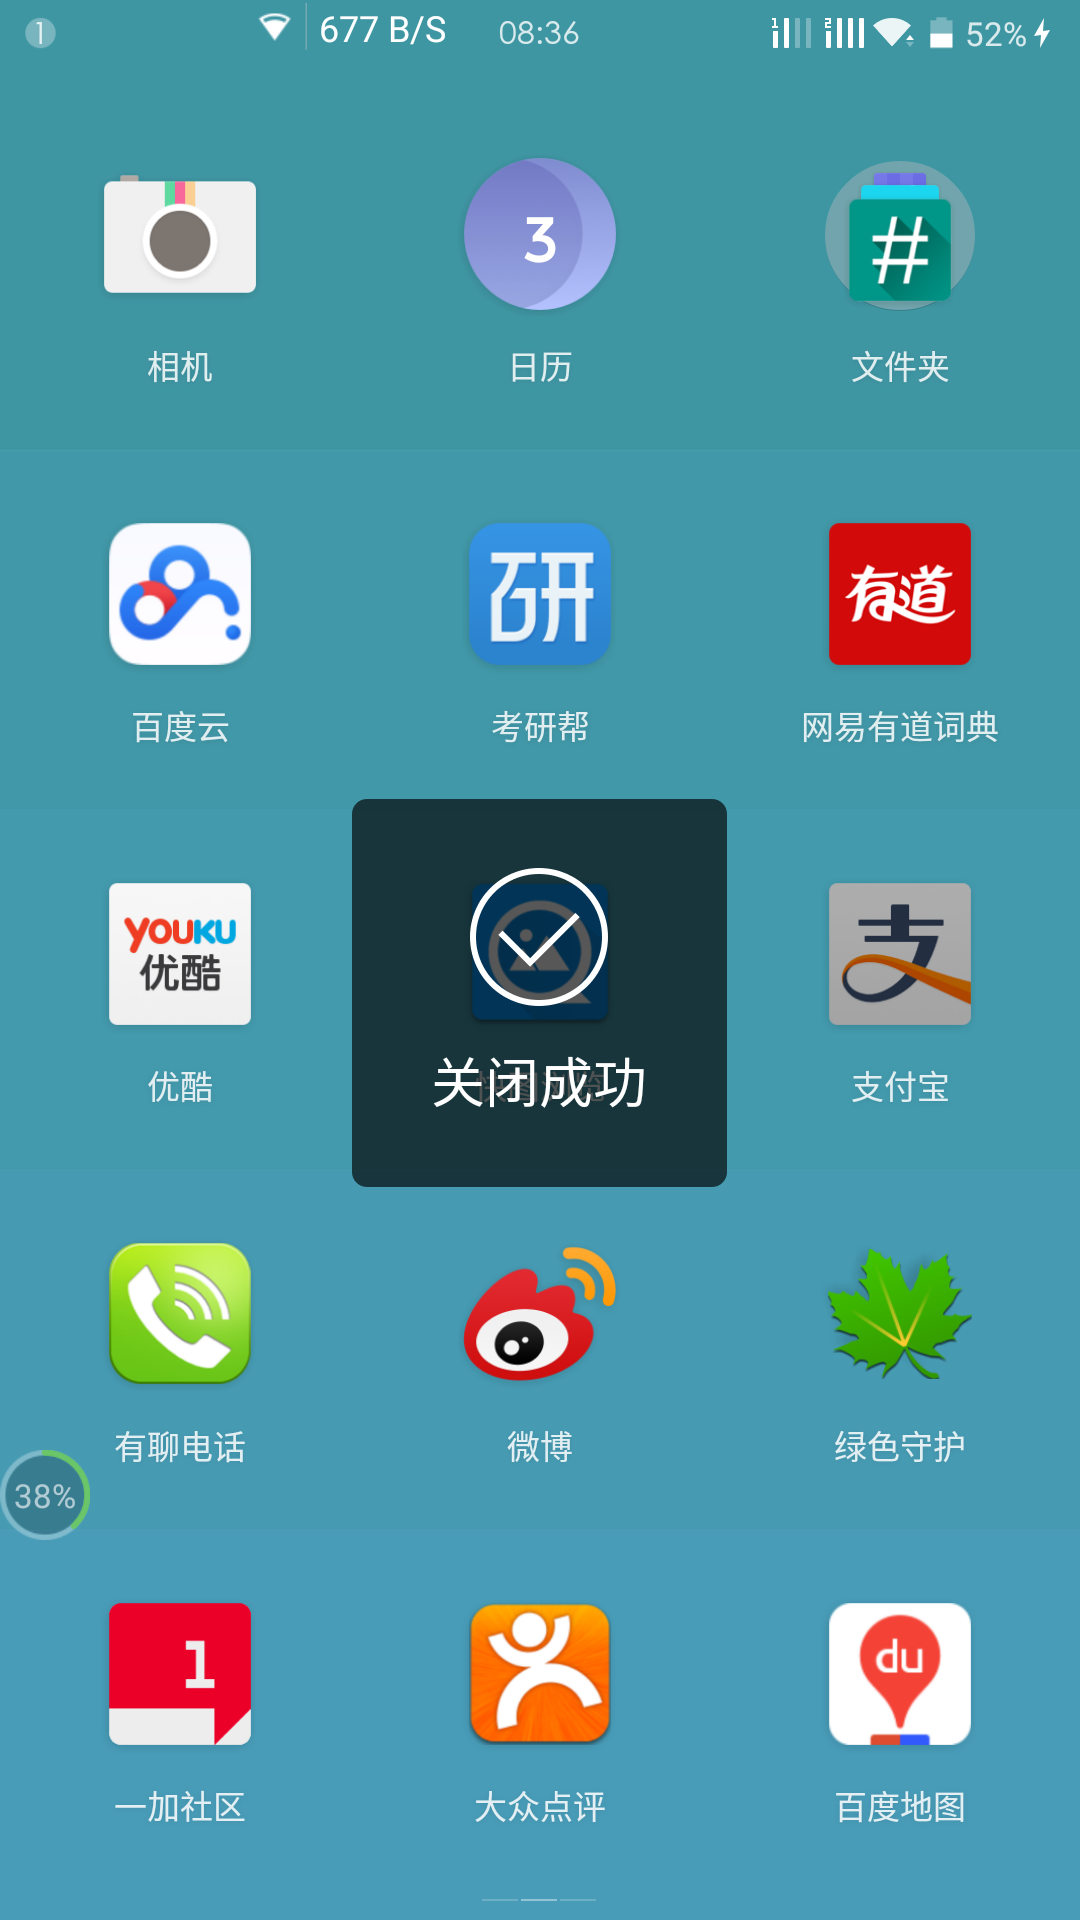 Screenshot_2015-09-03-08-36-53.png